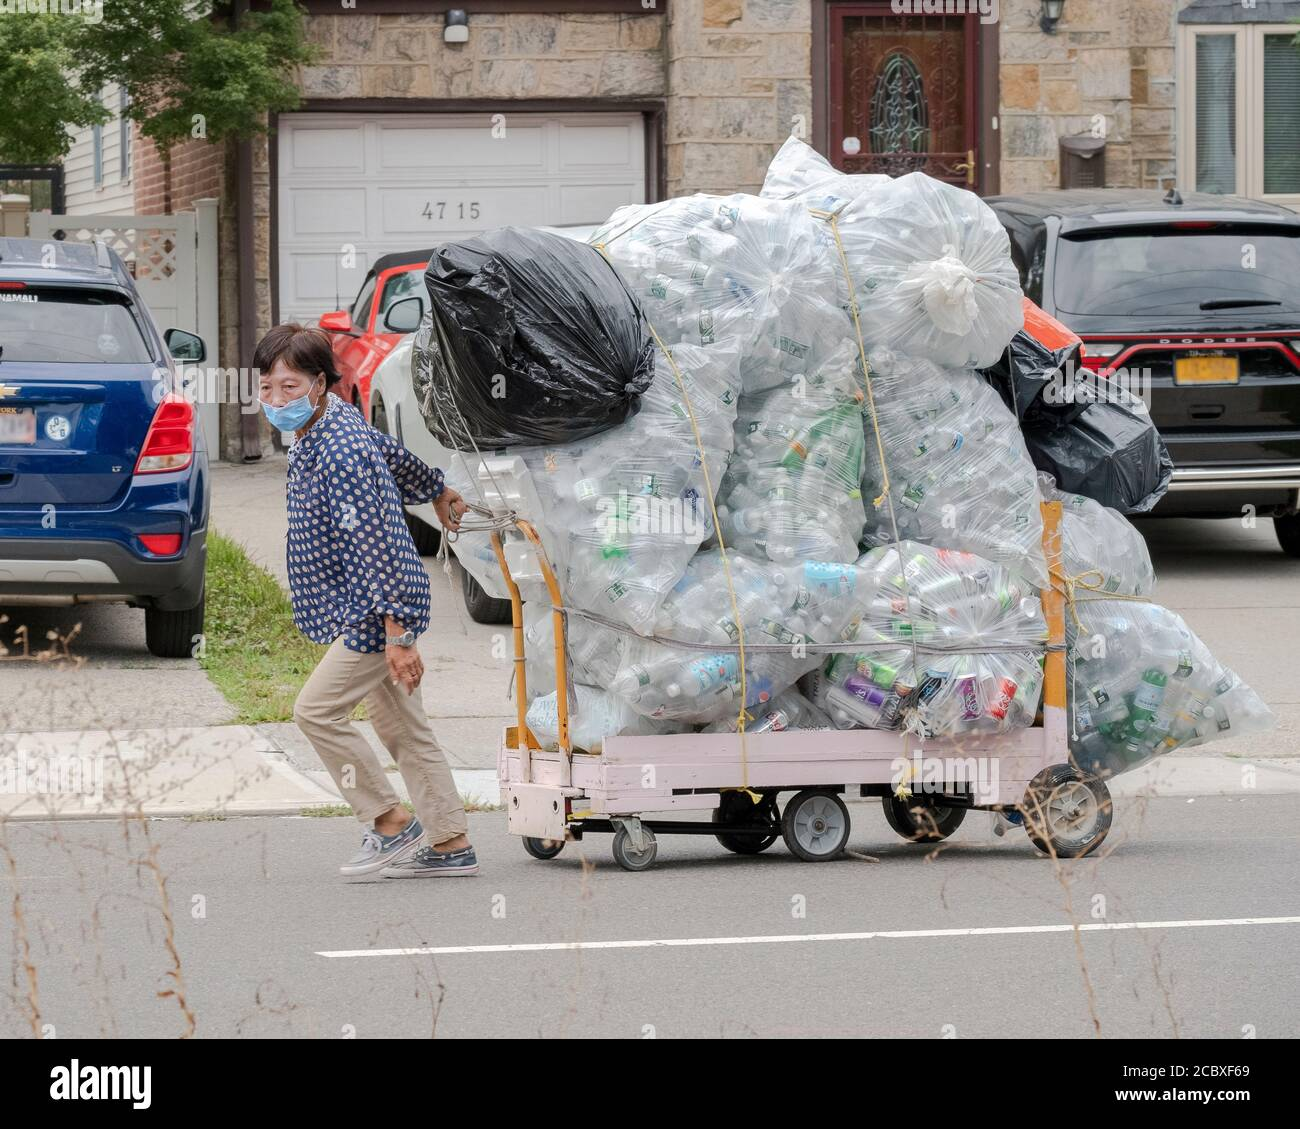 An Asian American, likely Chinese,  woman drags a huge load of deposit bottles on a wheeled cart. On 162nd St. in Flushing, Queens, New York City. Stock Photo